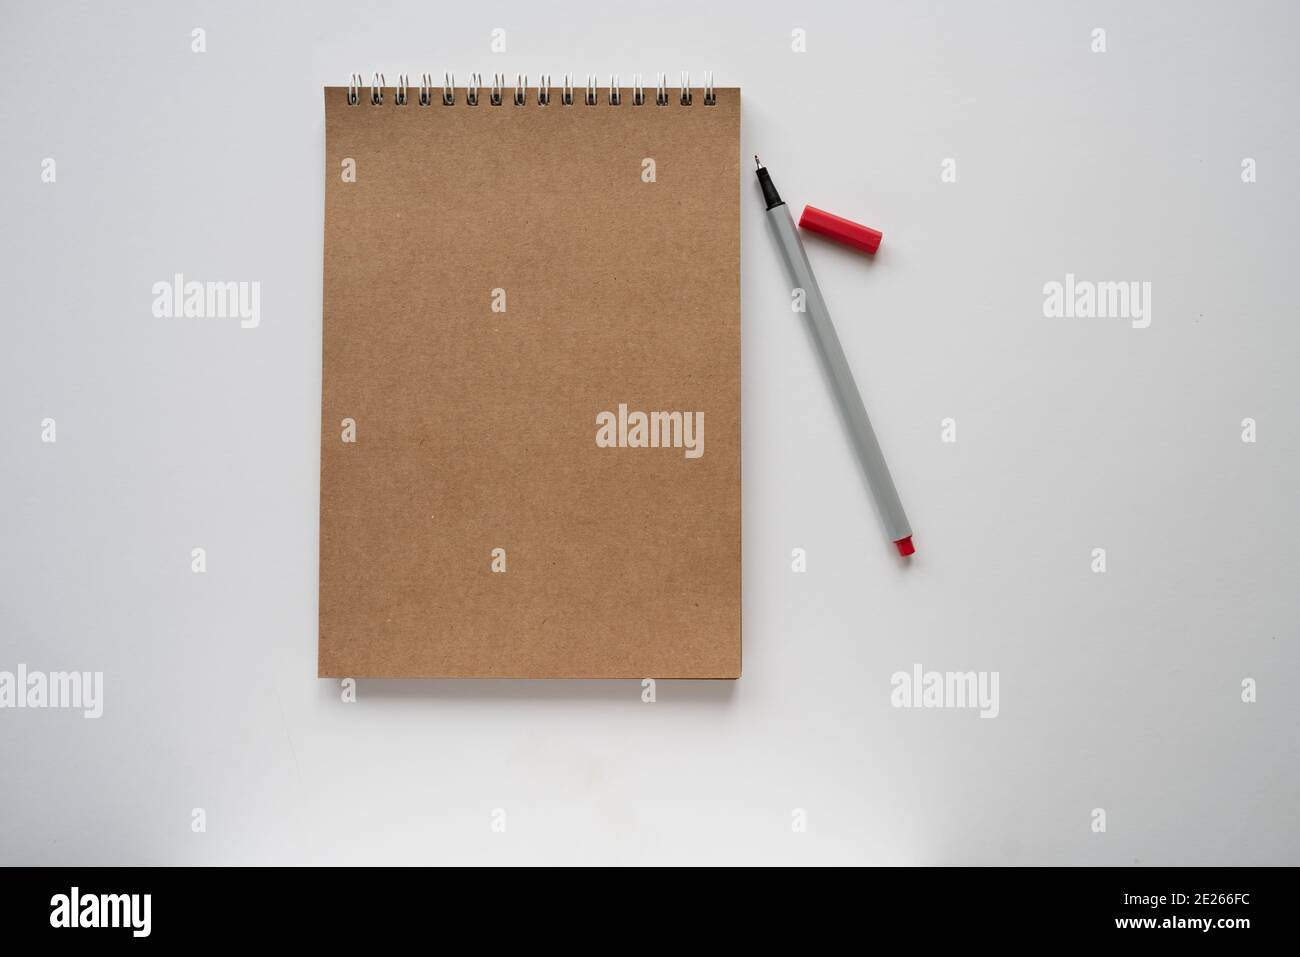 craft papper notebook and red pencil on white background, isolated. taking note. new year's resolution, goals. Stock Photo